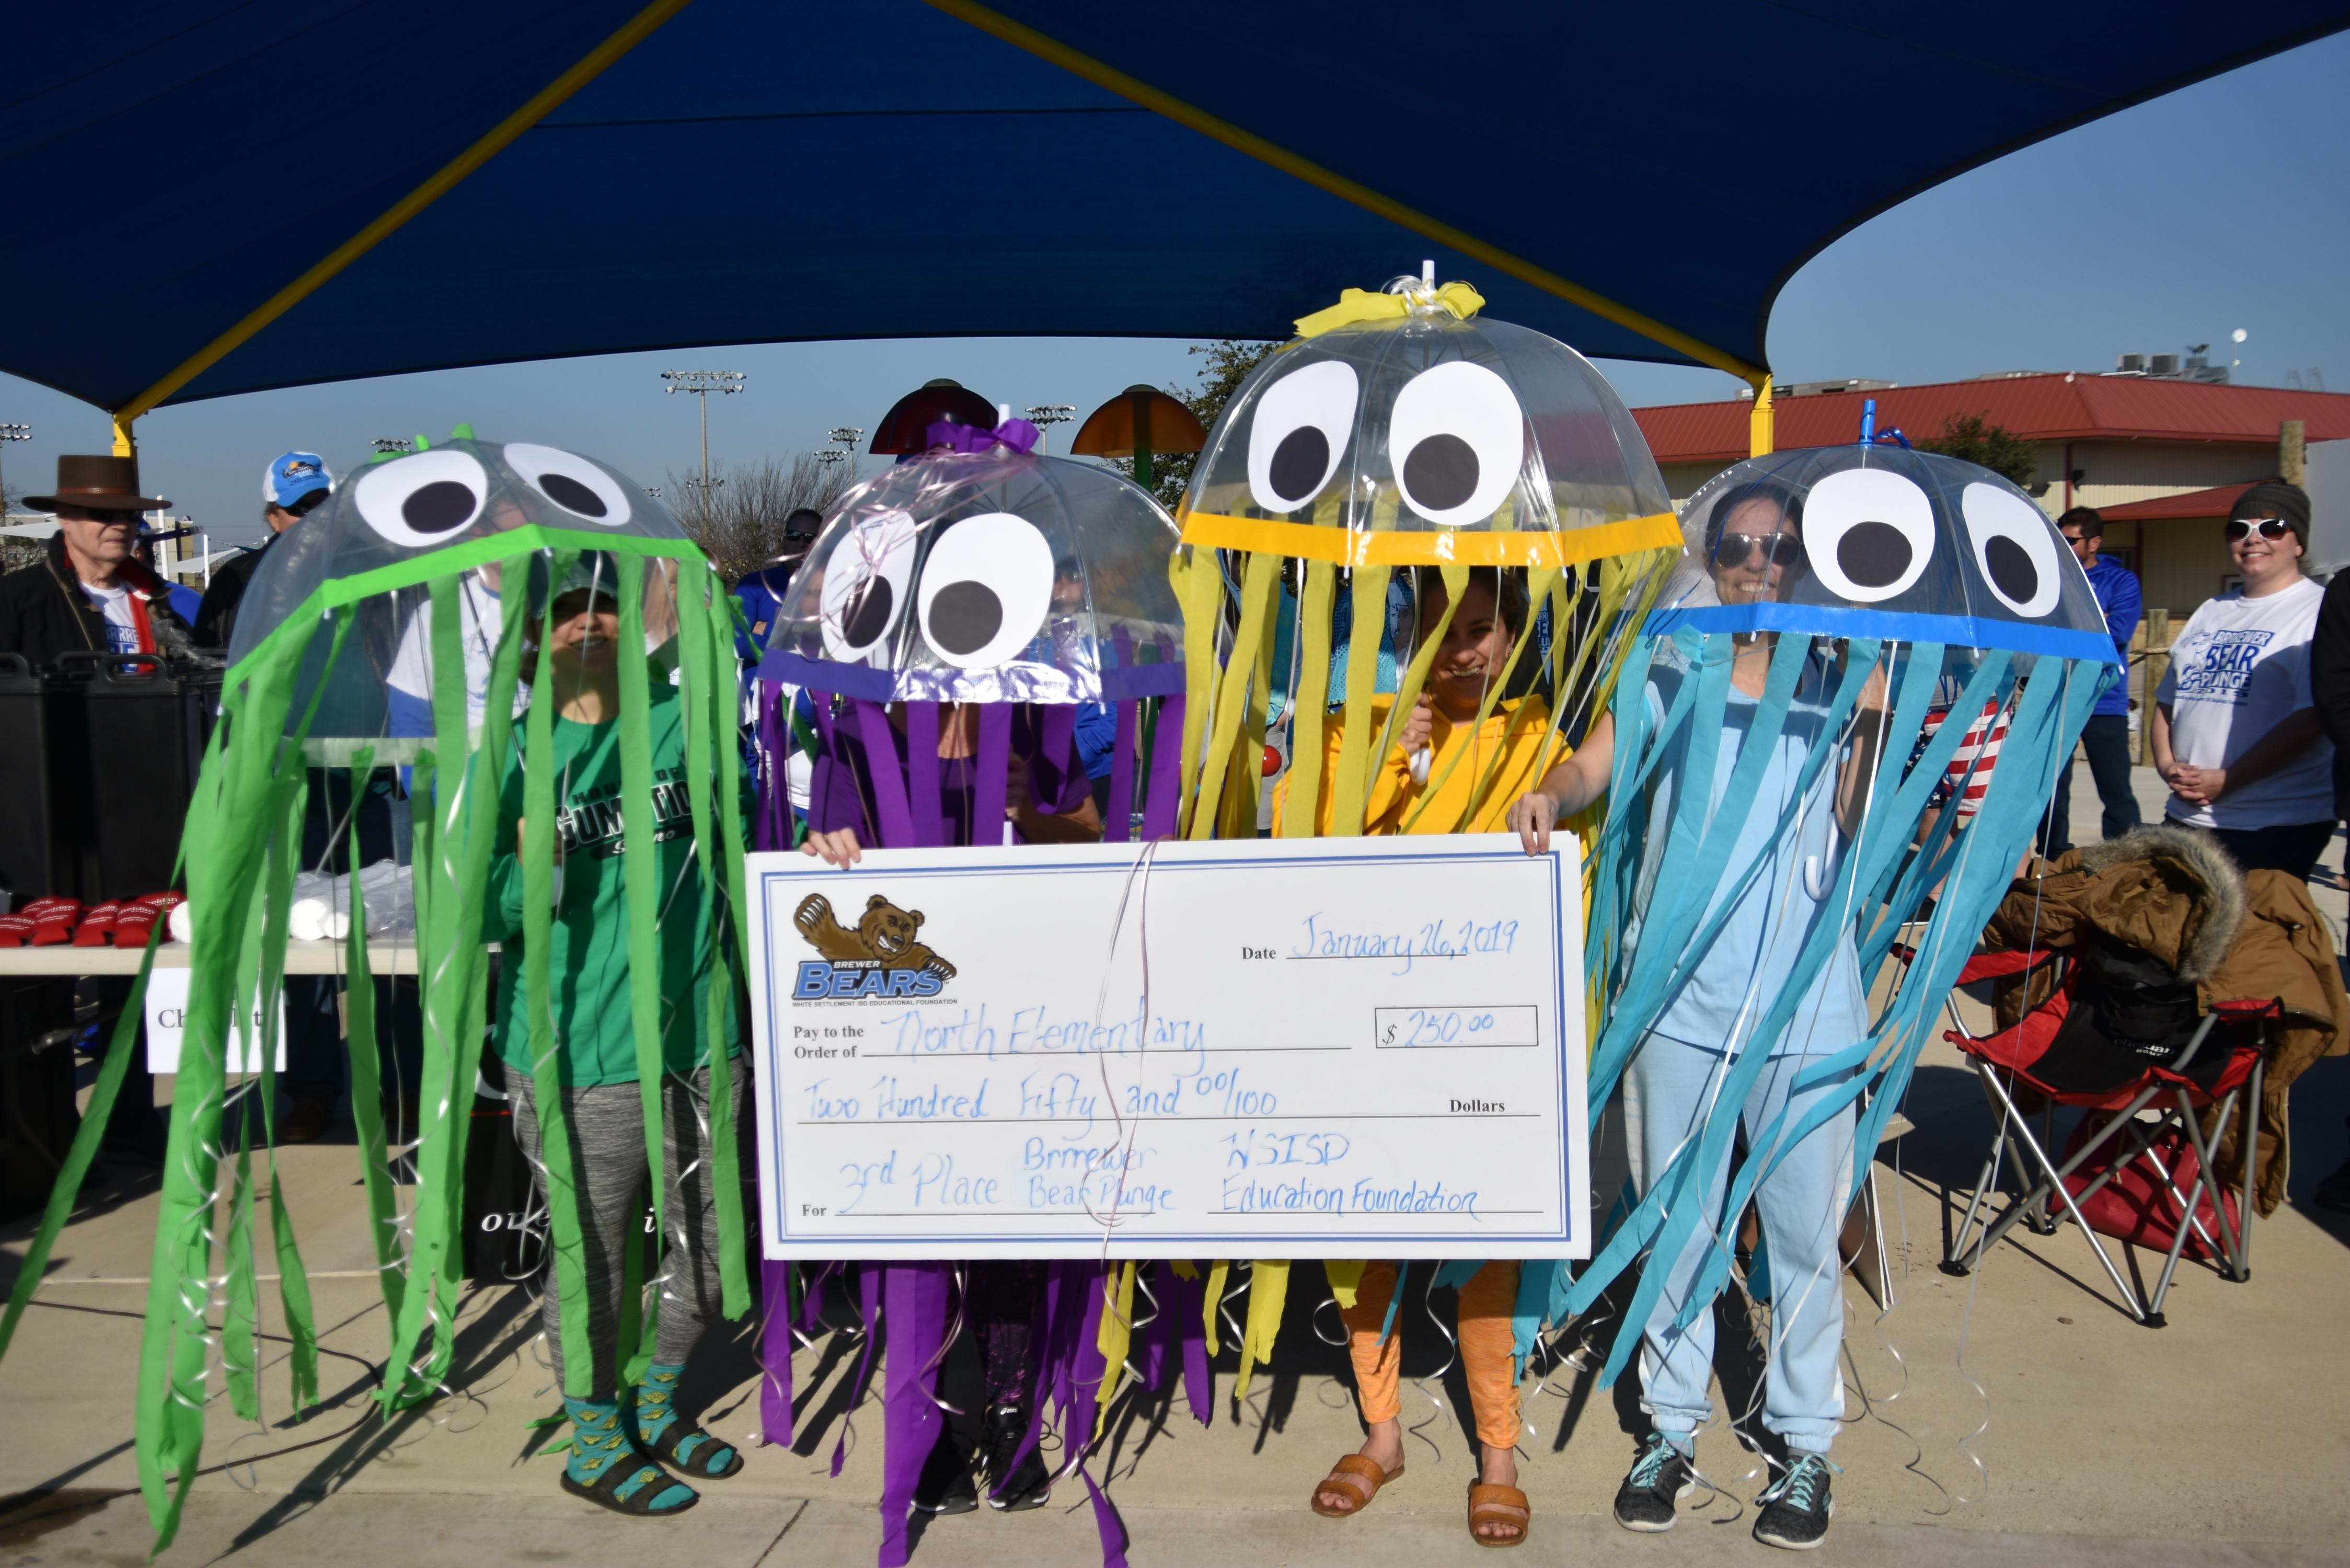 North Elementary received $250 for third place and second place in the costume contest.